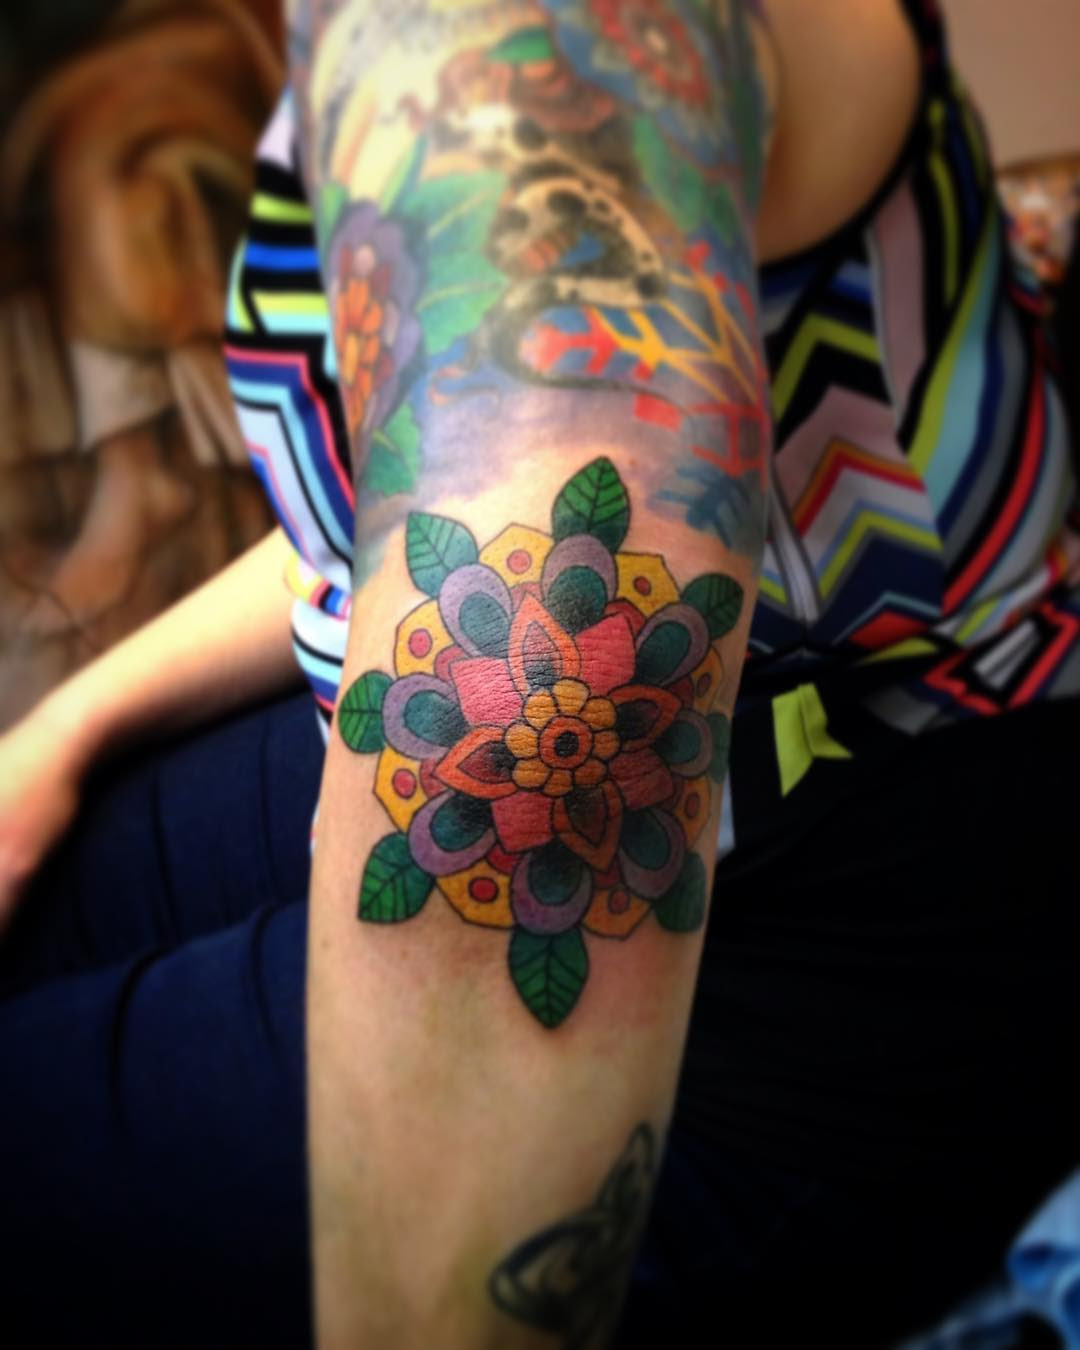 120+ Best Elbow Tattoo Designs & Meanings - Popular Types